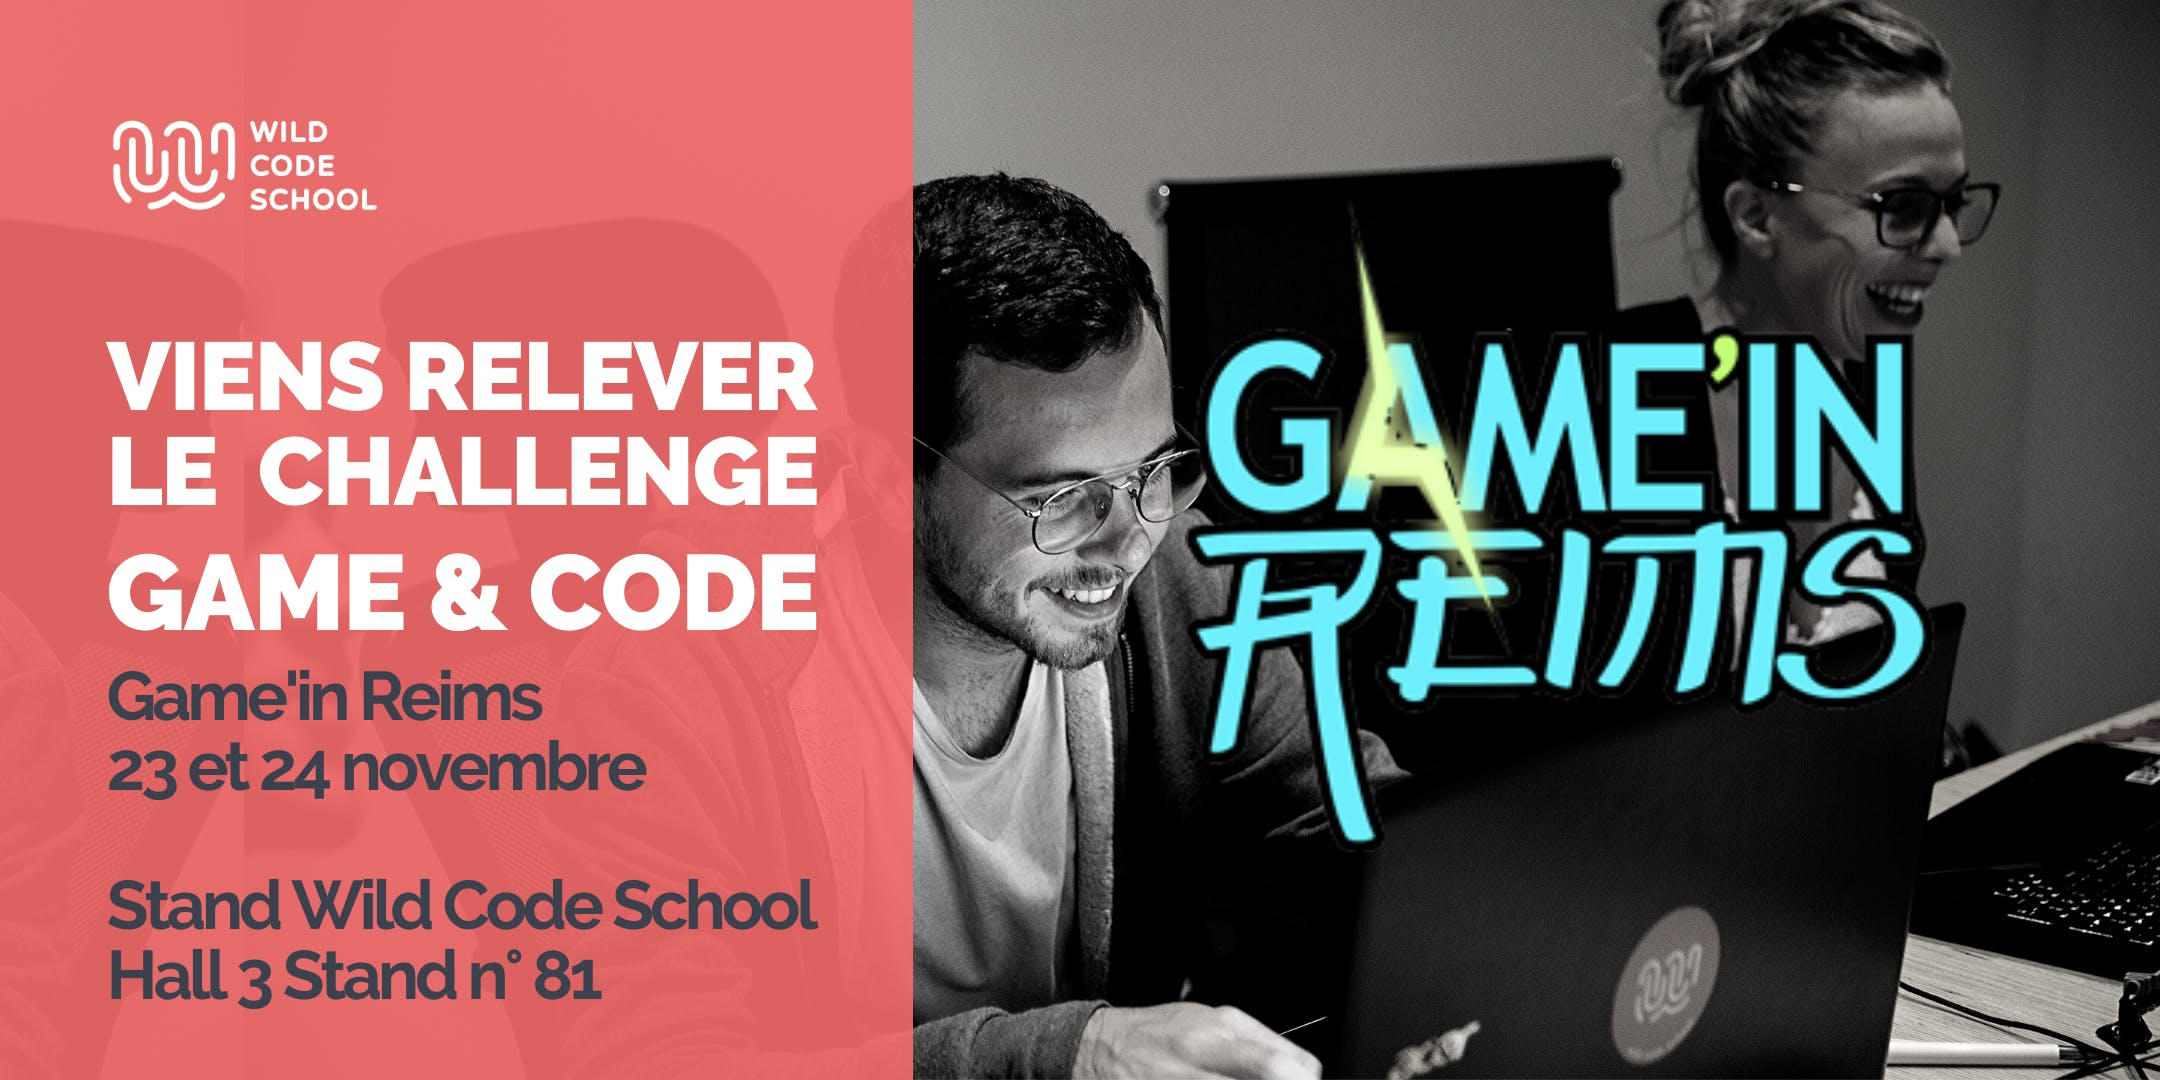 """Game'in Reims - Viens relever le challenge """"Game & Code"""" ! - Wild Code School Reims (Hall 3 Stand 81)"""